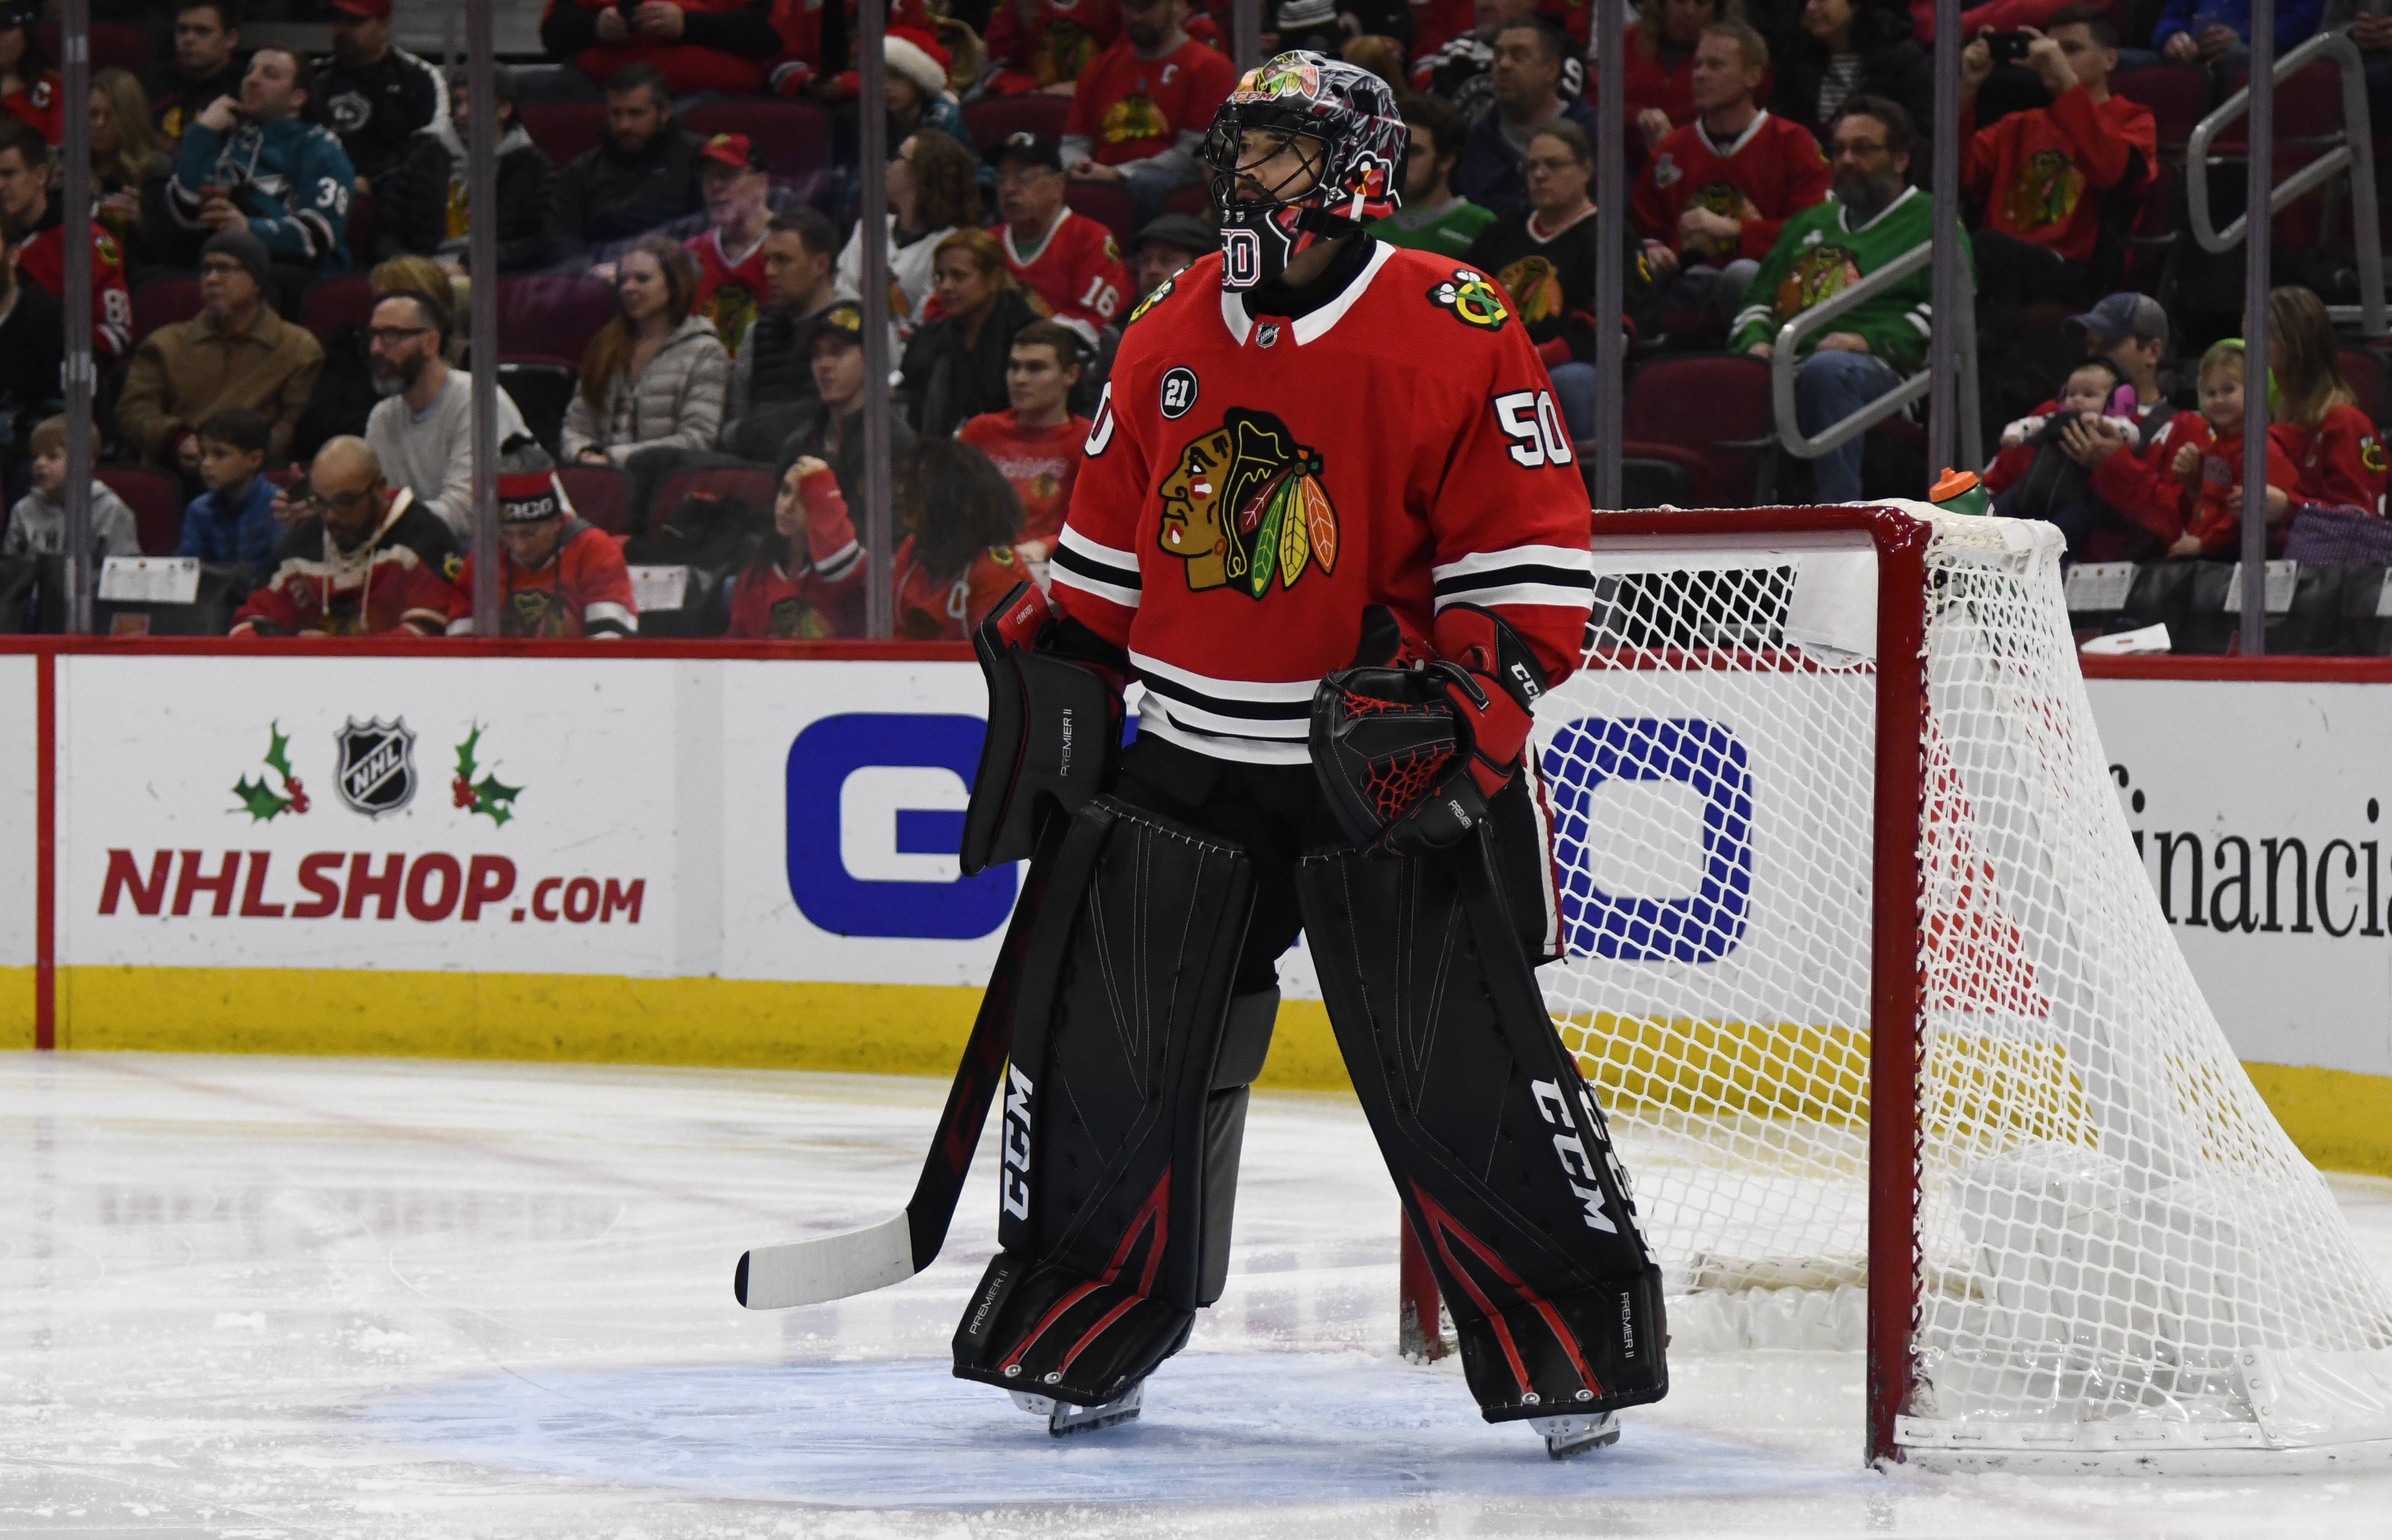 Chicago Blackhawks goaltender Corey Crawford looks on during the first period against the San Jose Sharks Sunday at the United Centero. Crawford left the game with 1:30 left in the first period after the back of his head struck the right post during a goalmouth pile-up.